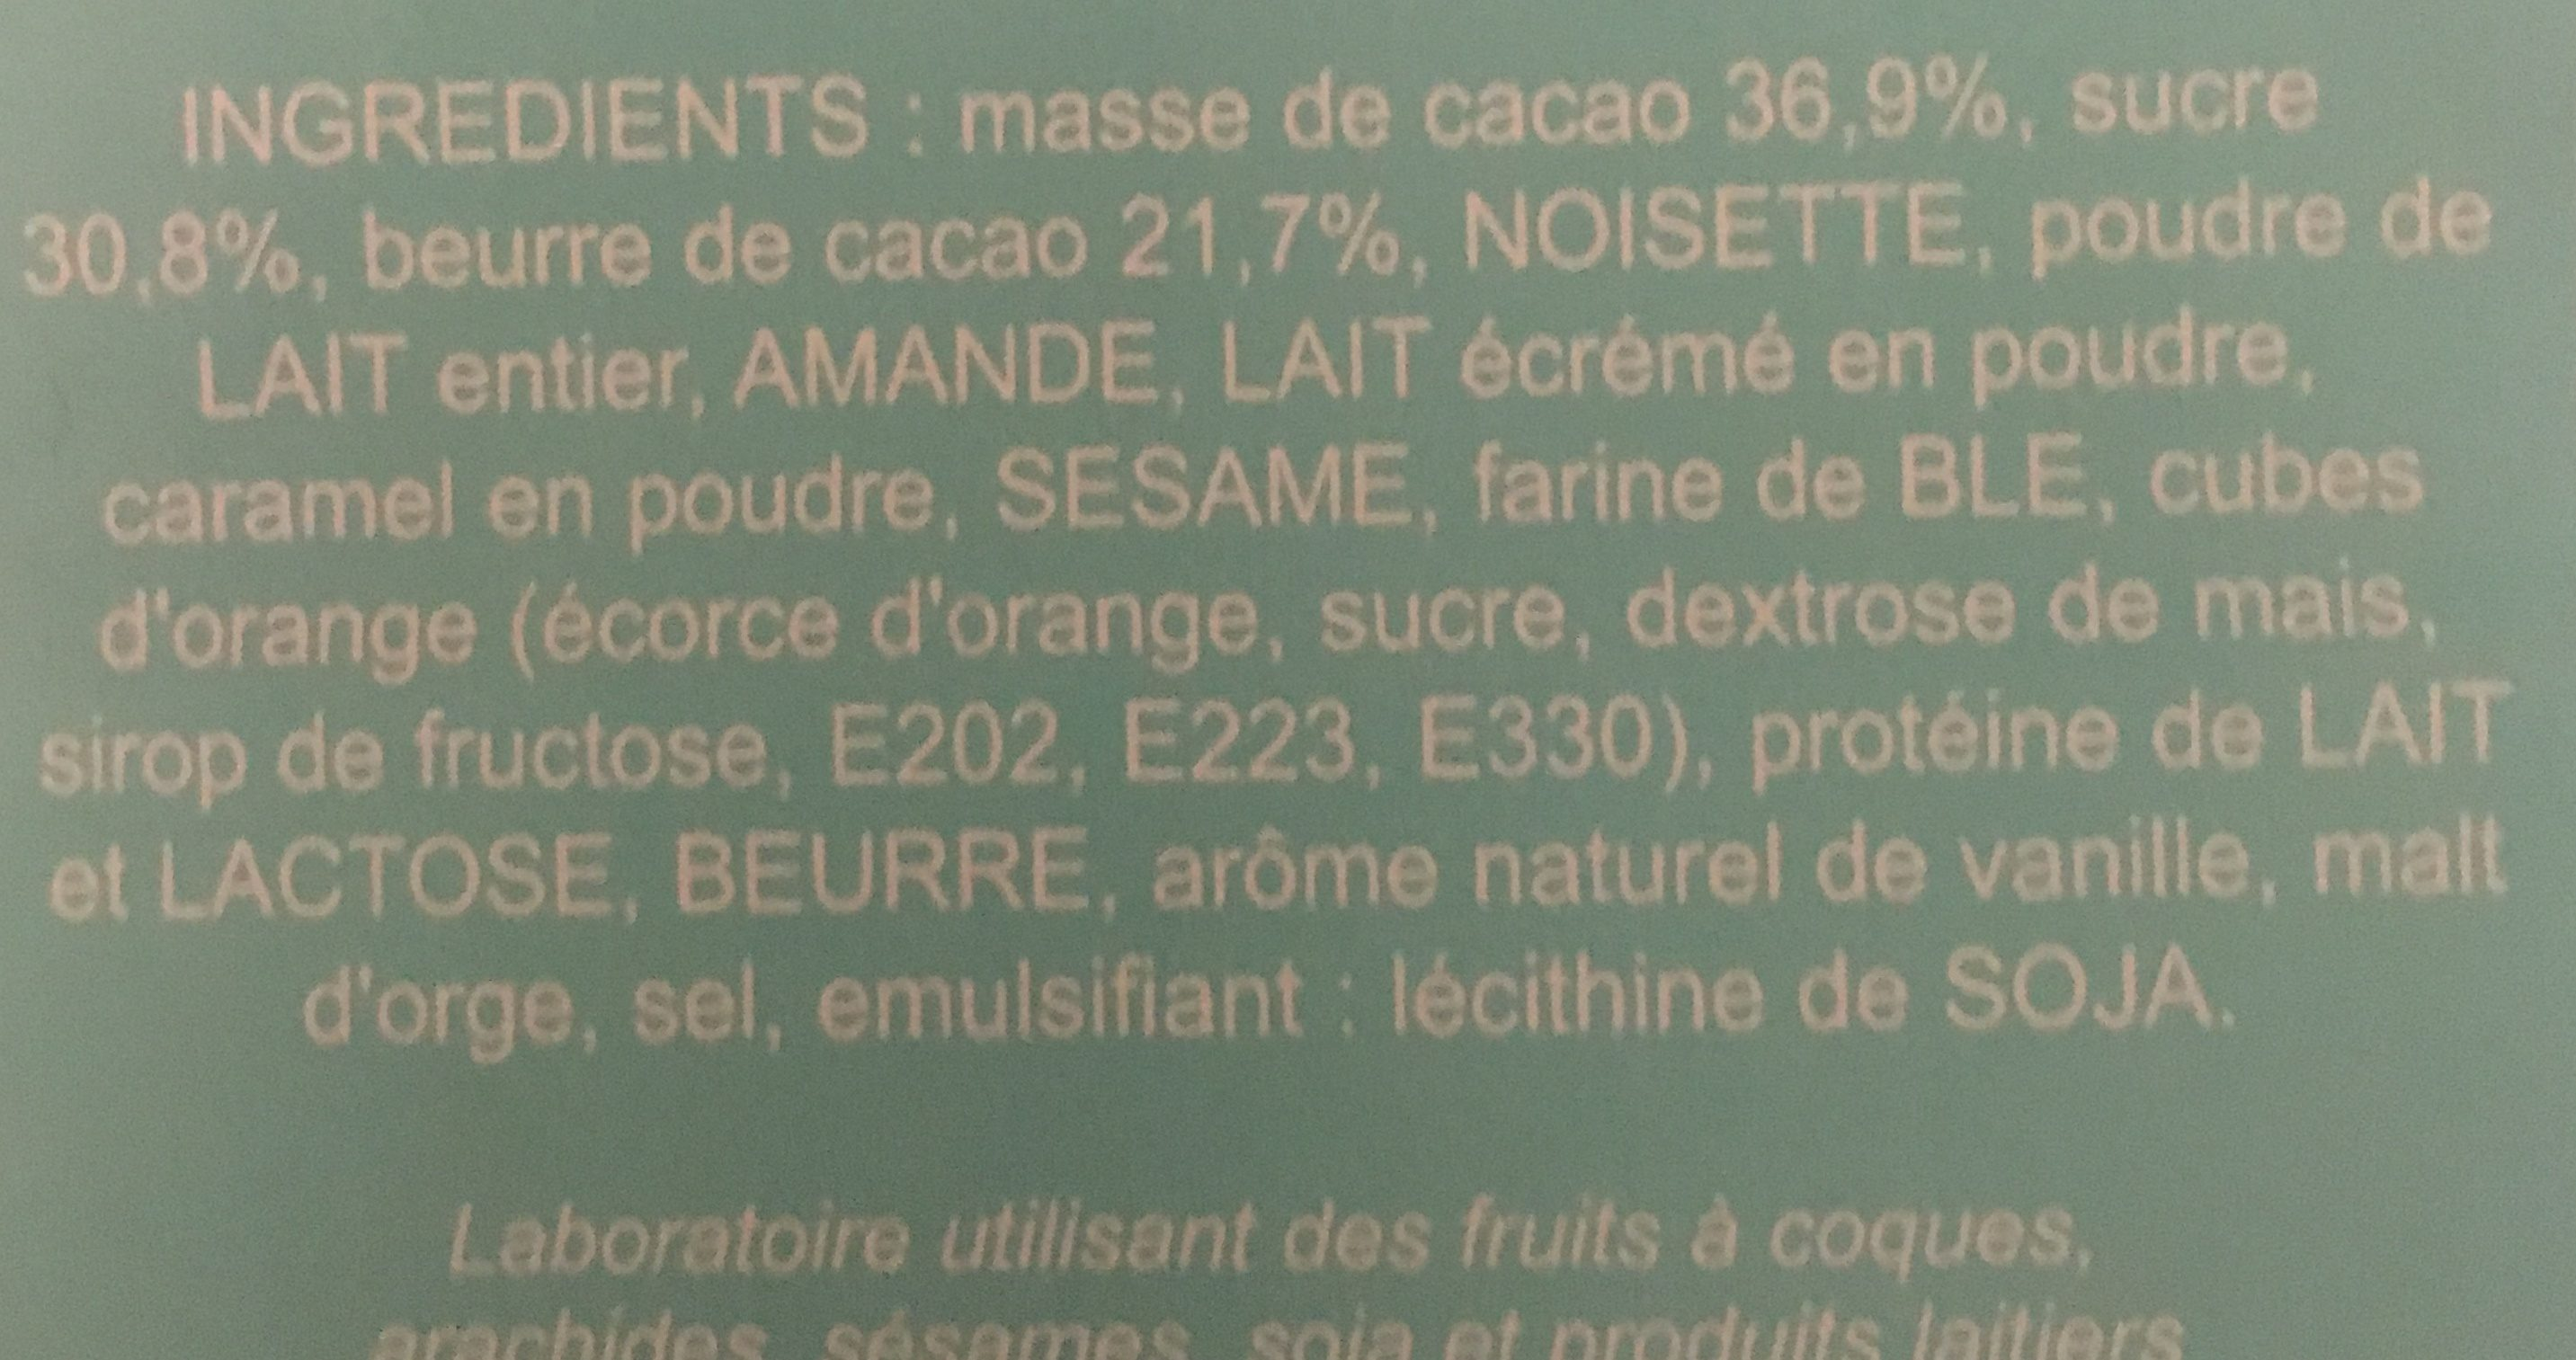 Chocolat noir et lait - Ingredients